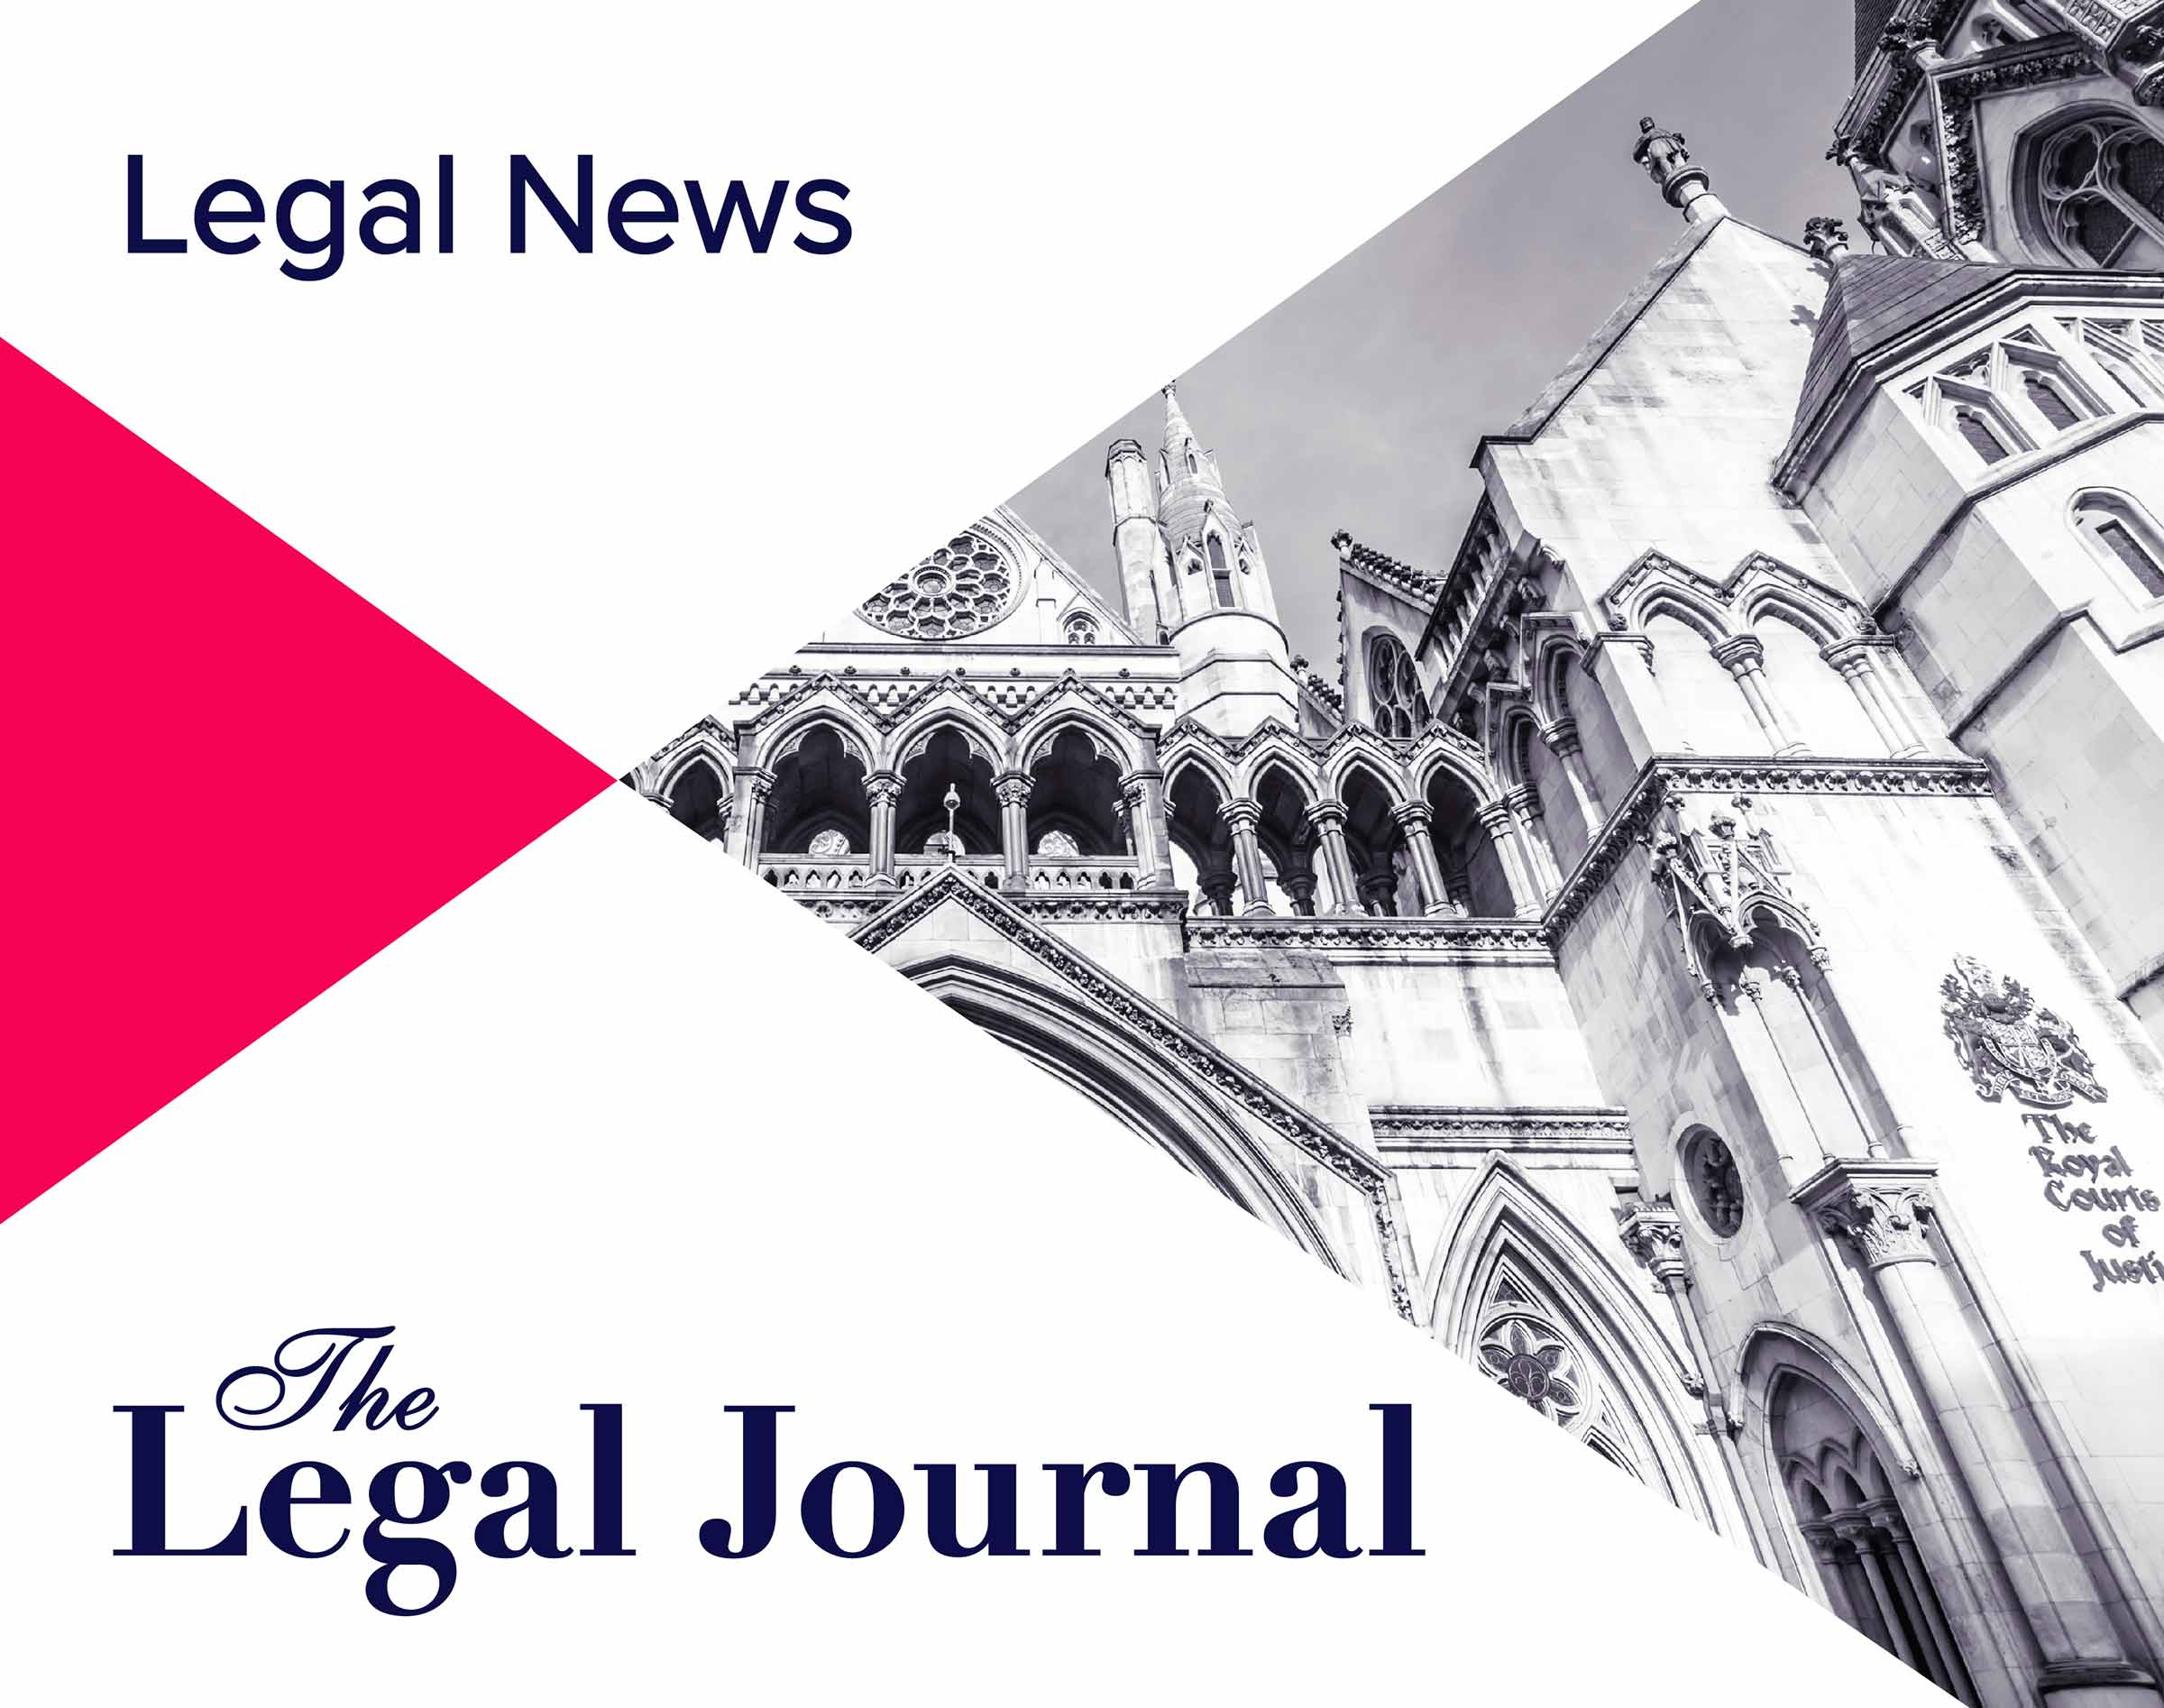 The Legal Journal panel